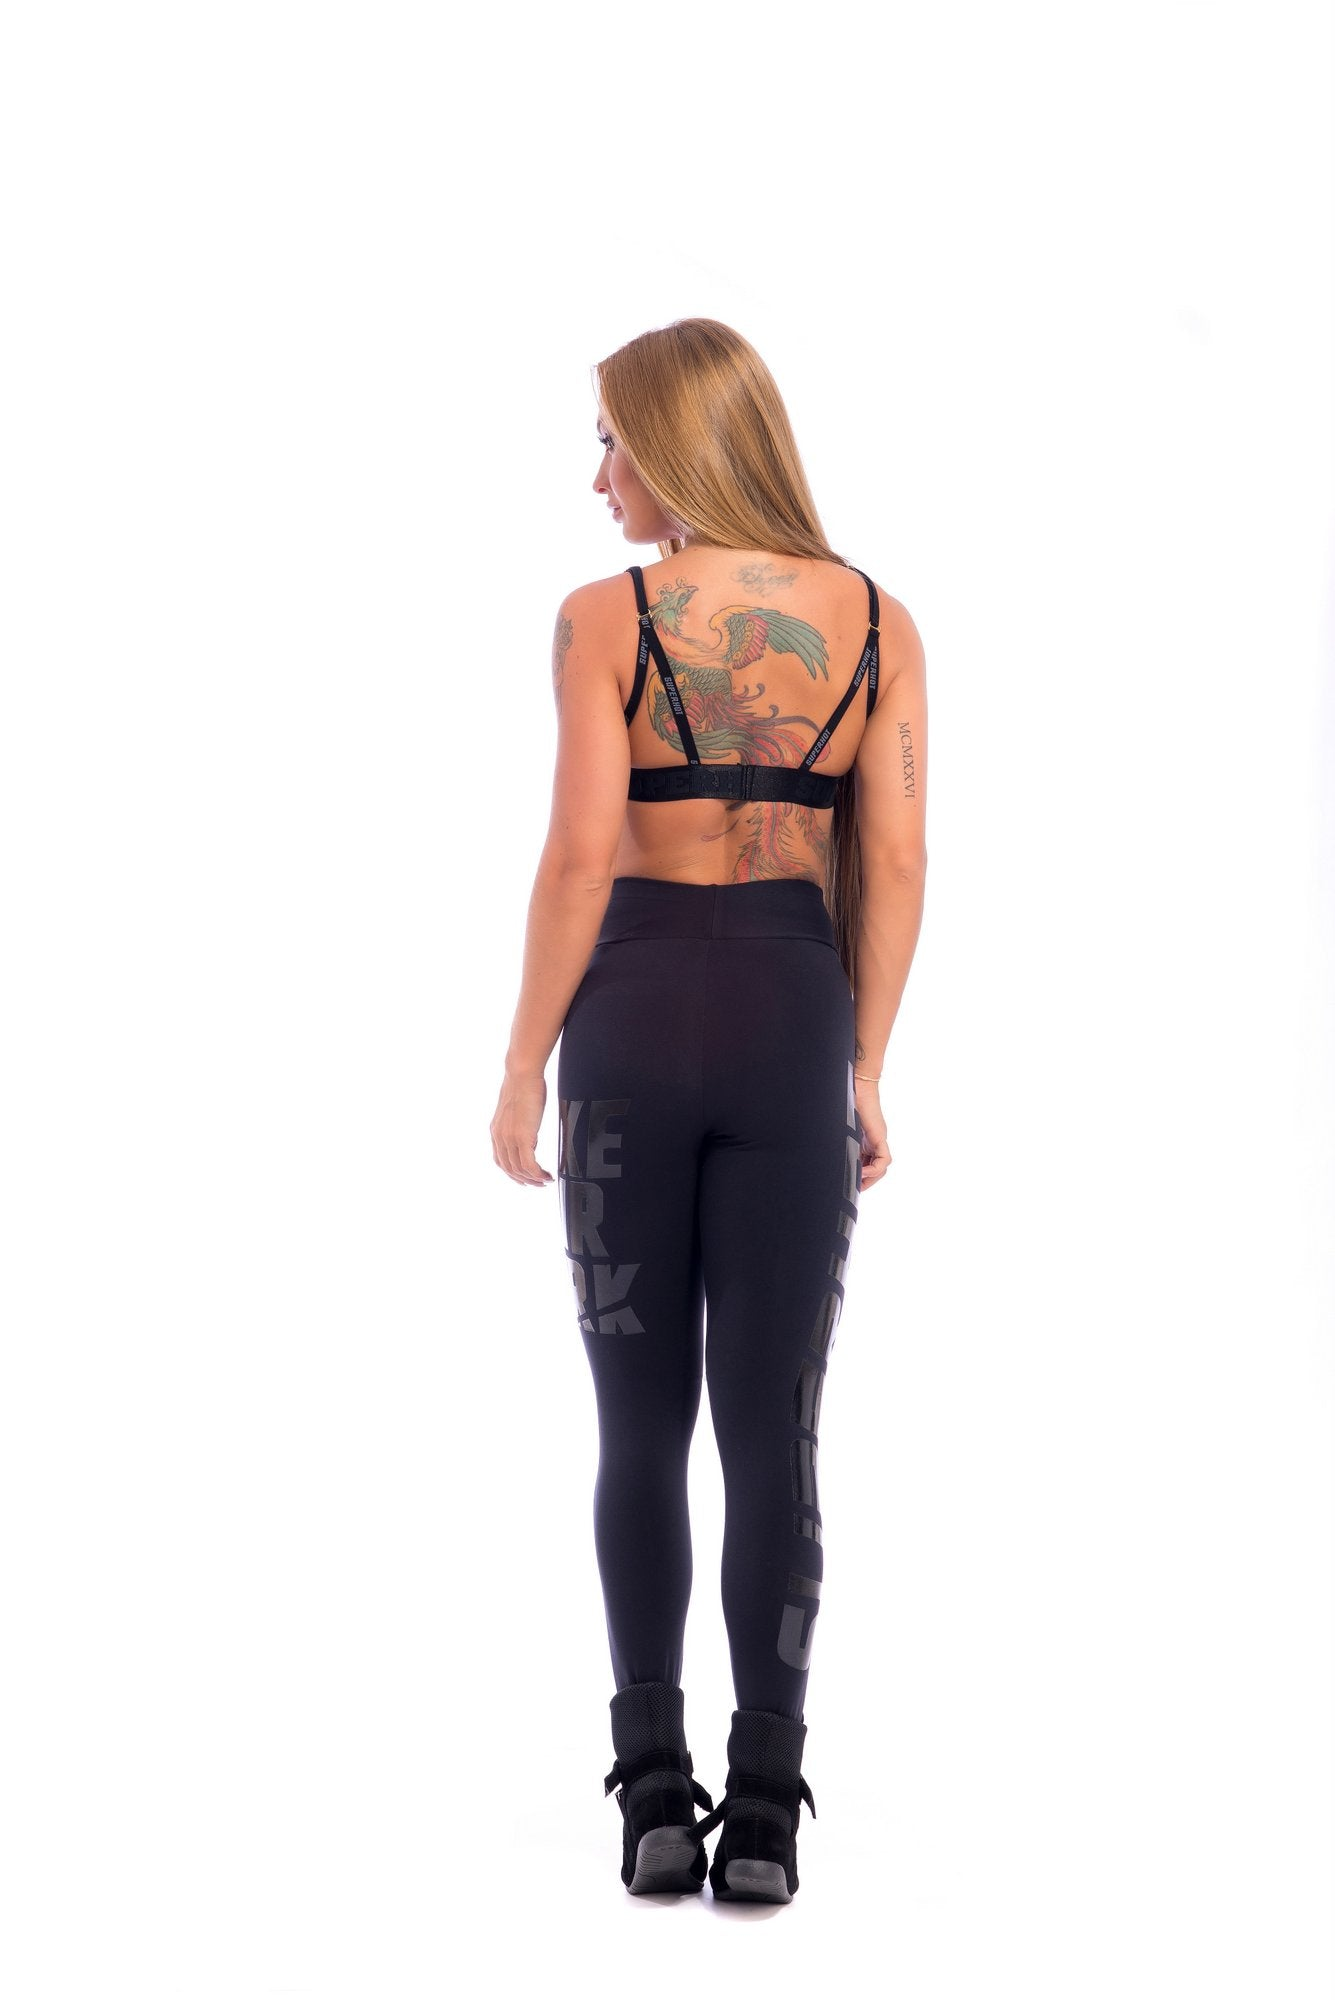 Make Your Mark Legging - Black on Black - SUPERHOT - FitZee